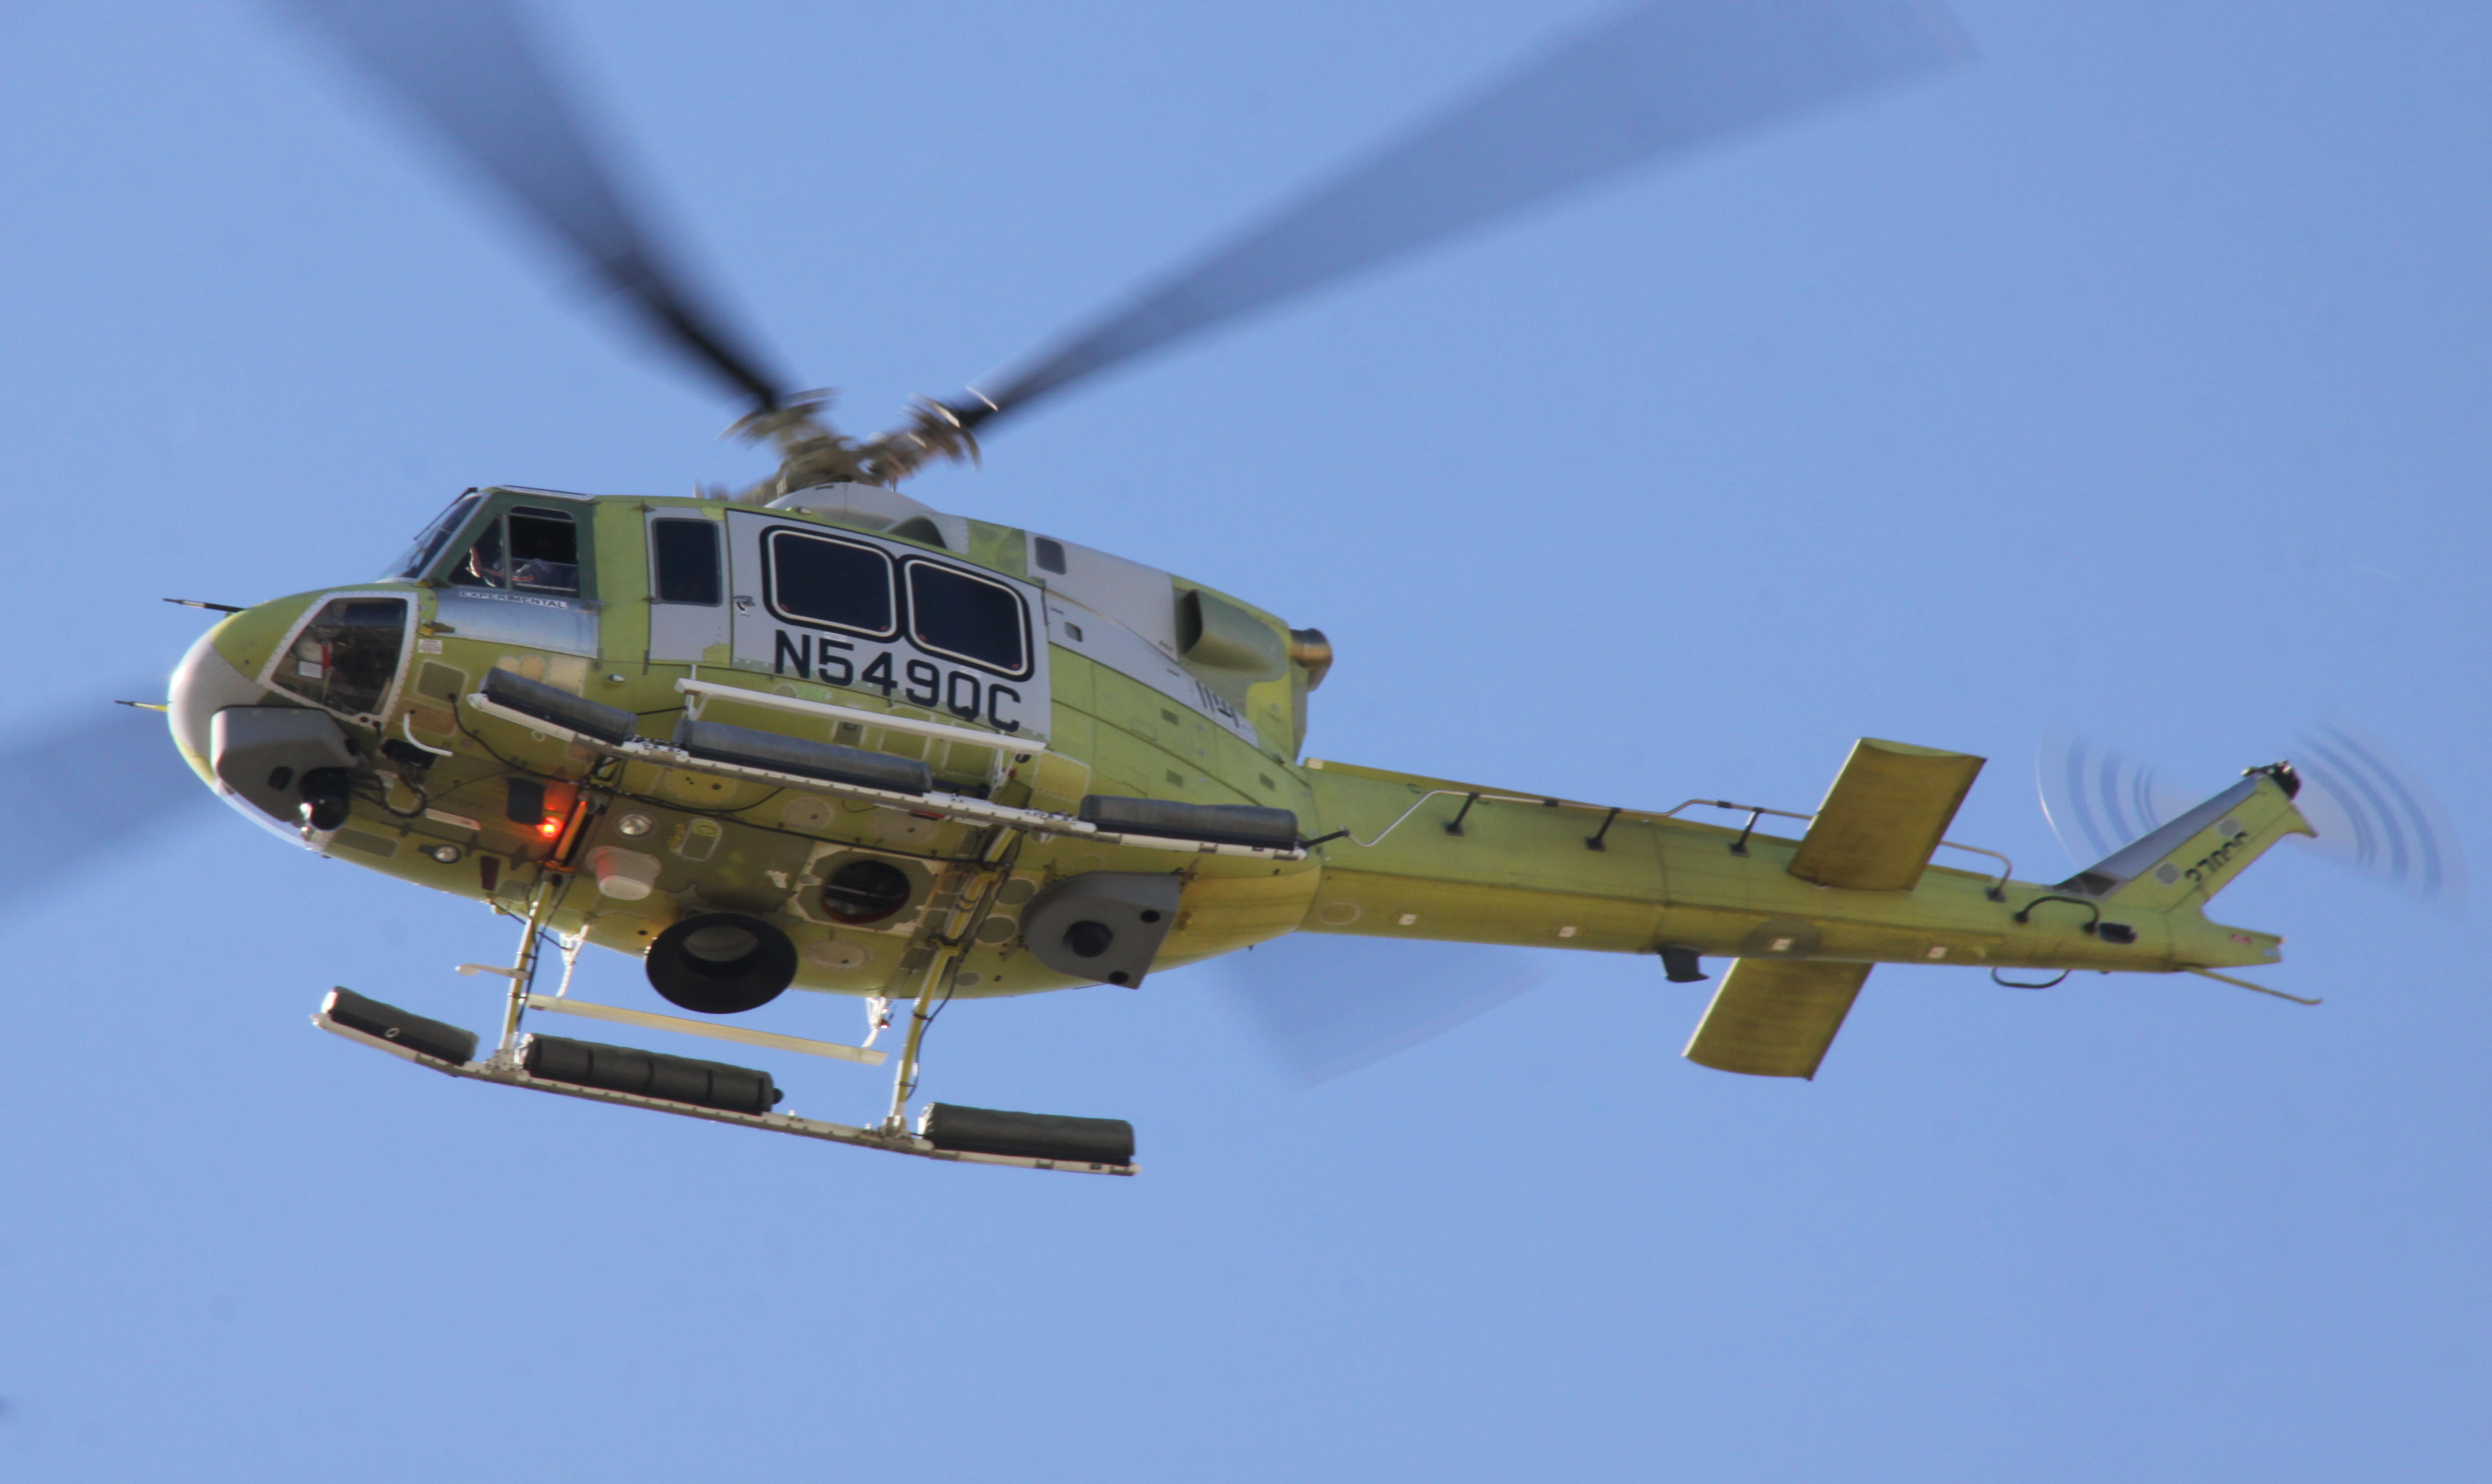 Bell 412 EPI ASW - Page 3 49139149001_0fd2cfd1f9_o_d